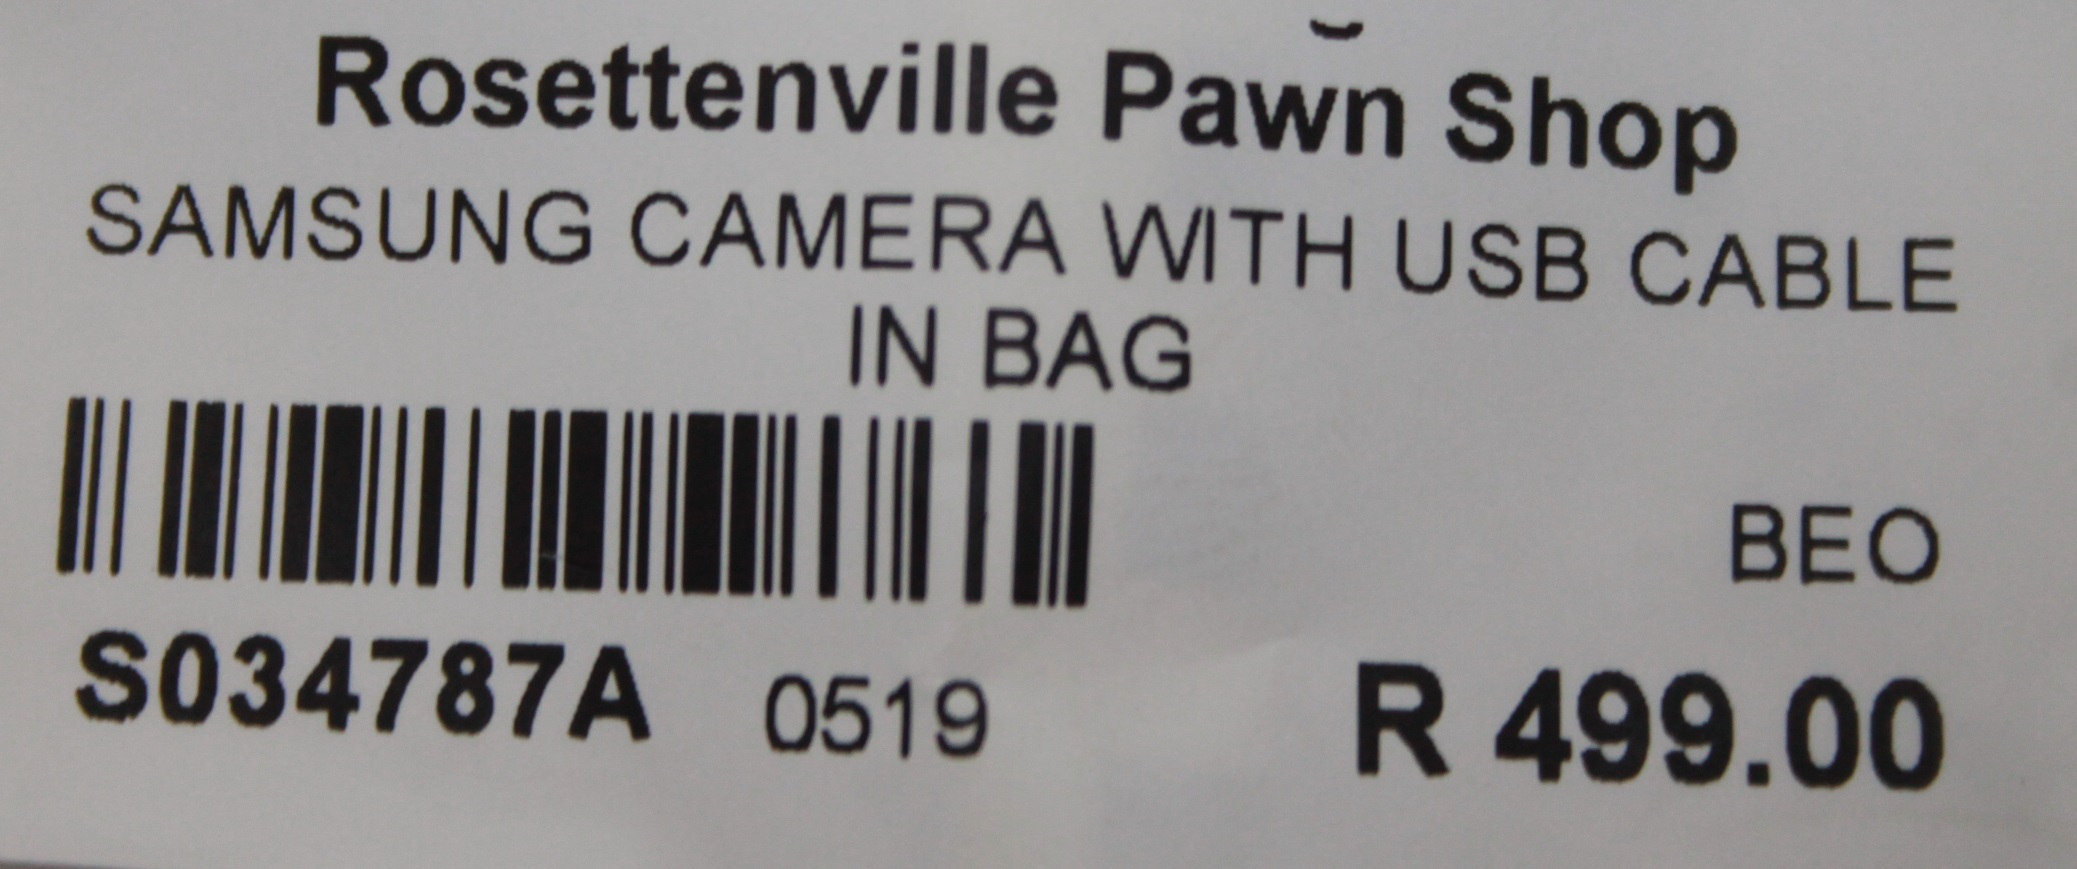 S034787A Samsung camera with usb cable in bag #Rosettenvillepawnshop